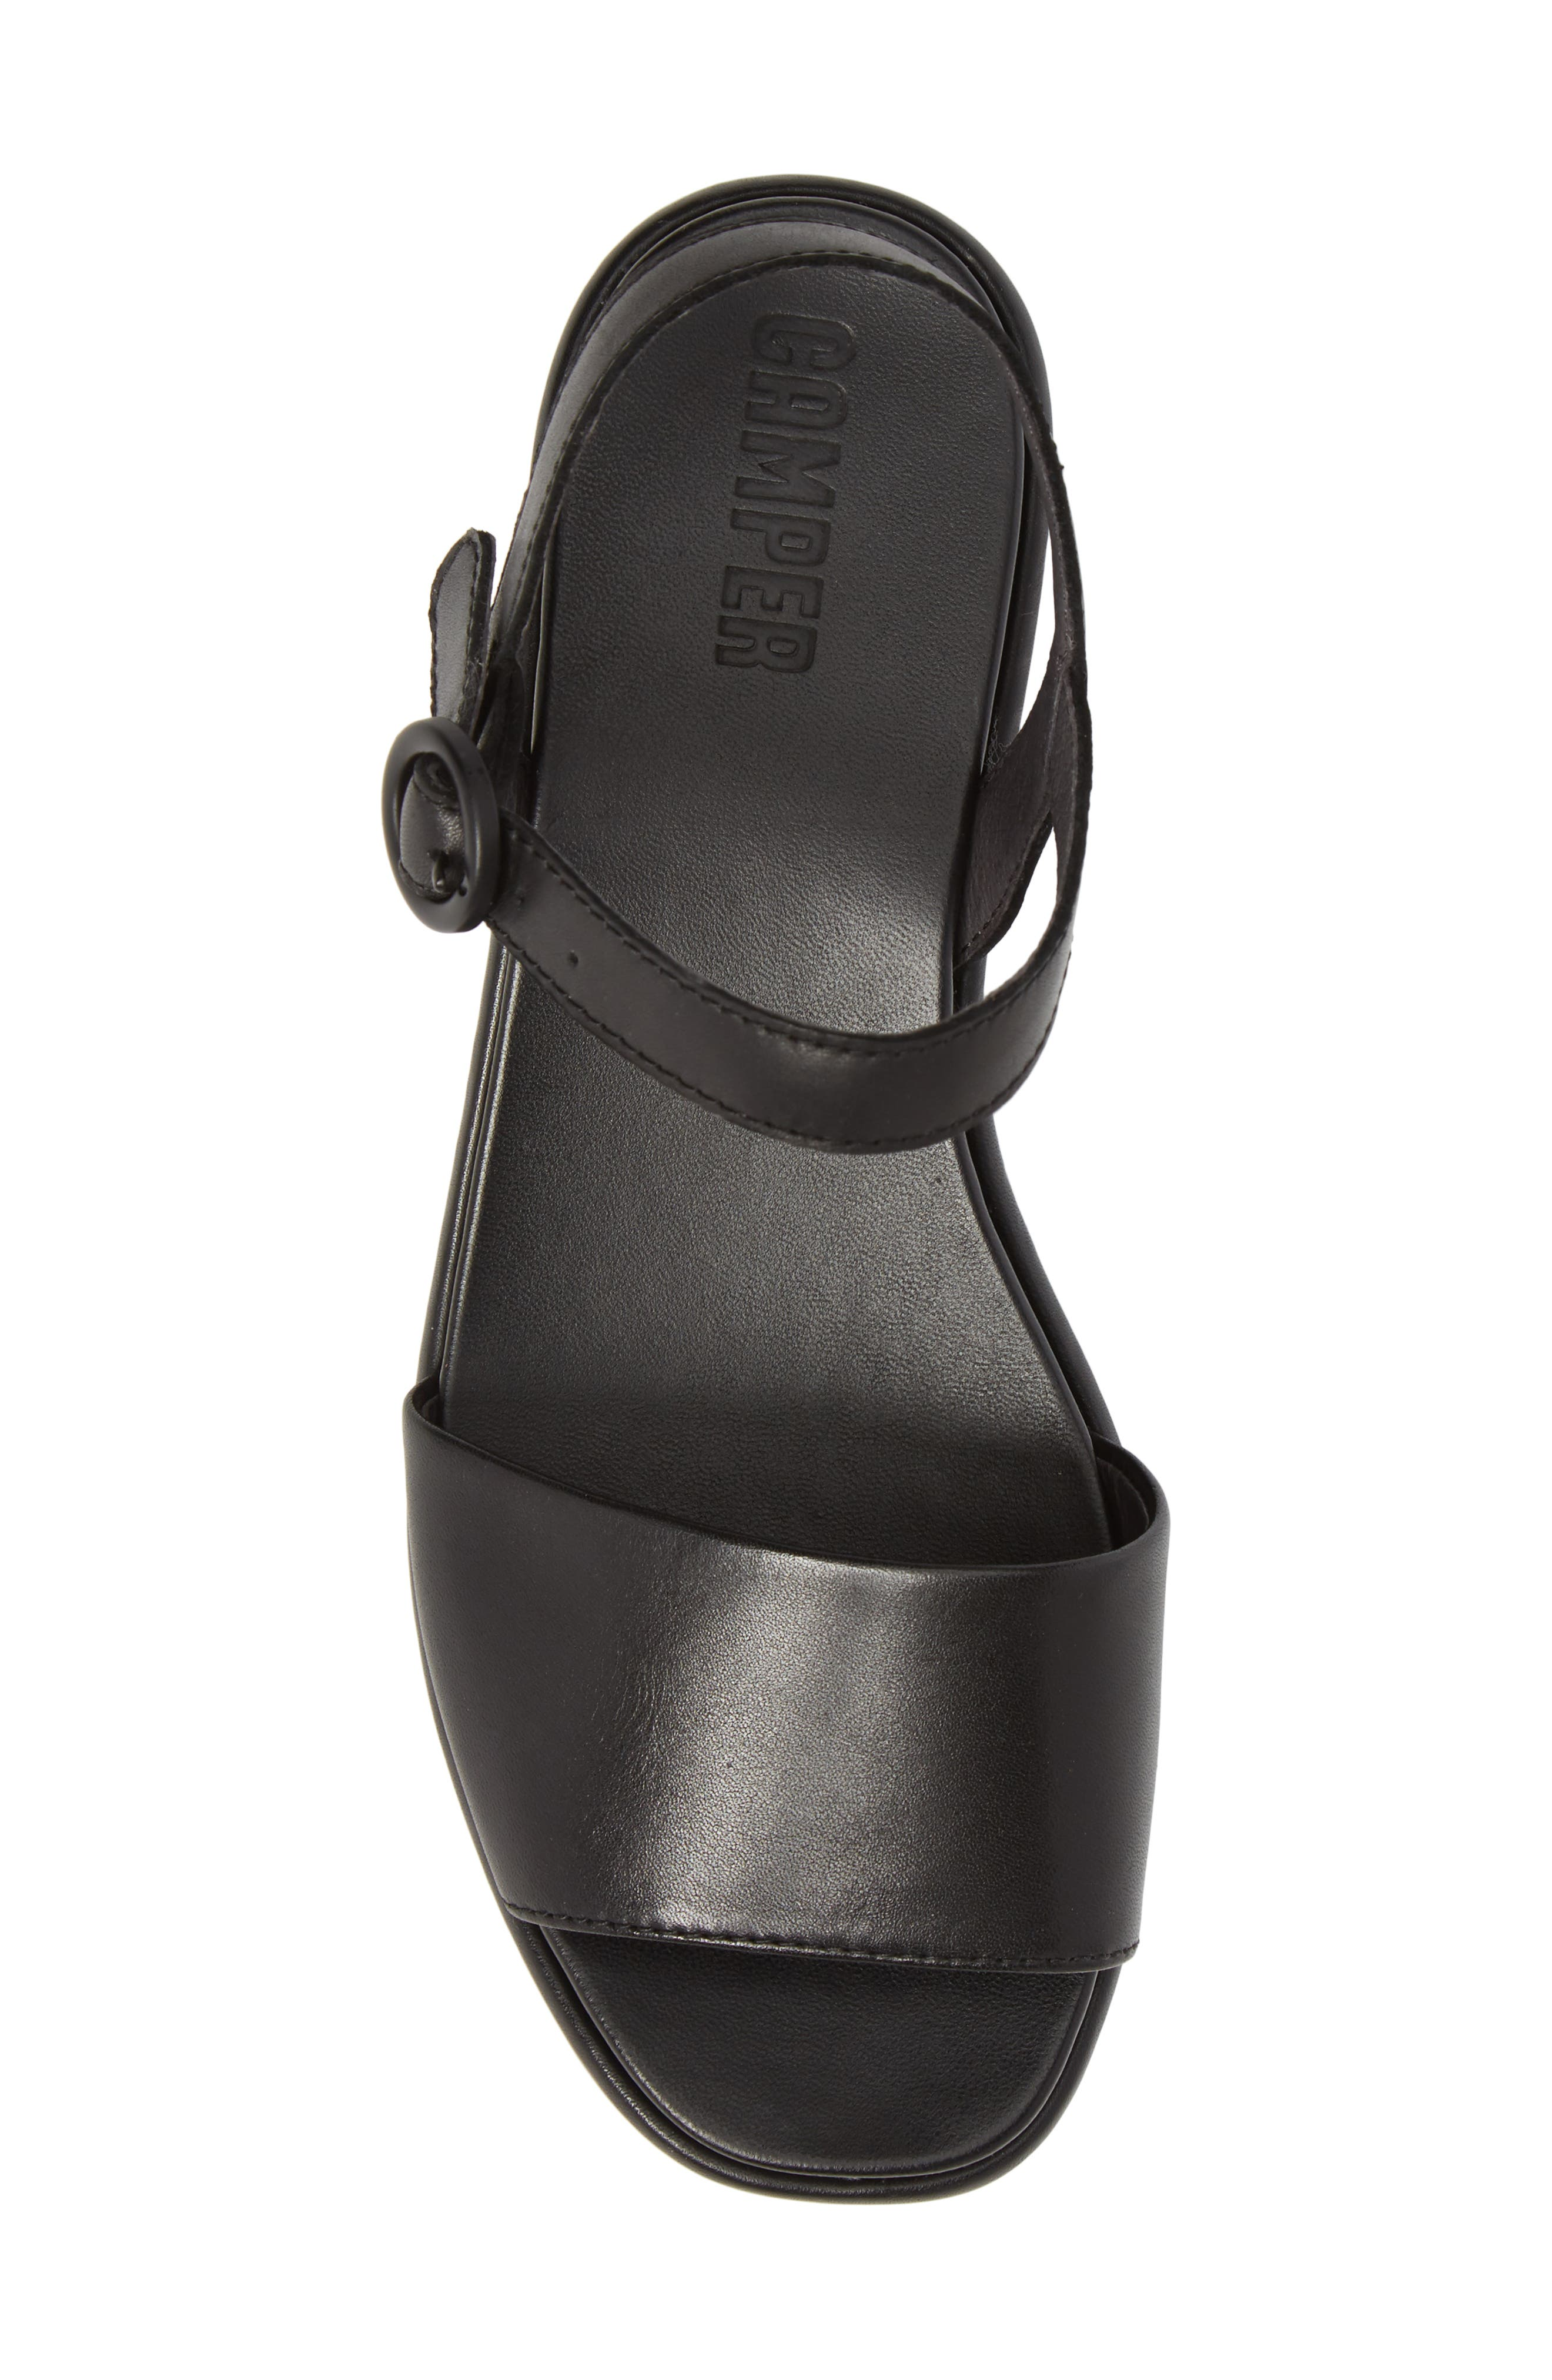 Misia Platform Wedge Sandal,                             Alternate thumbnail 5, color,                             001